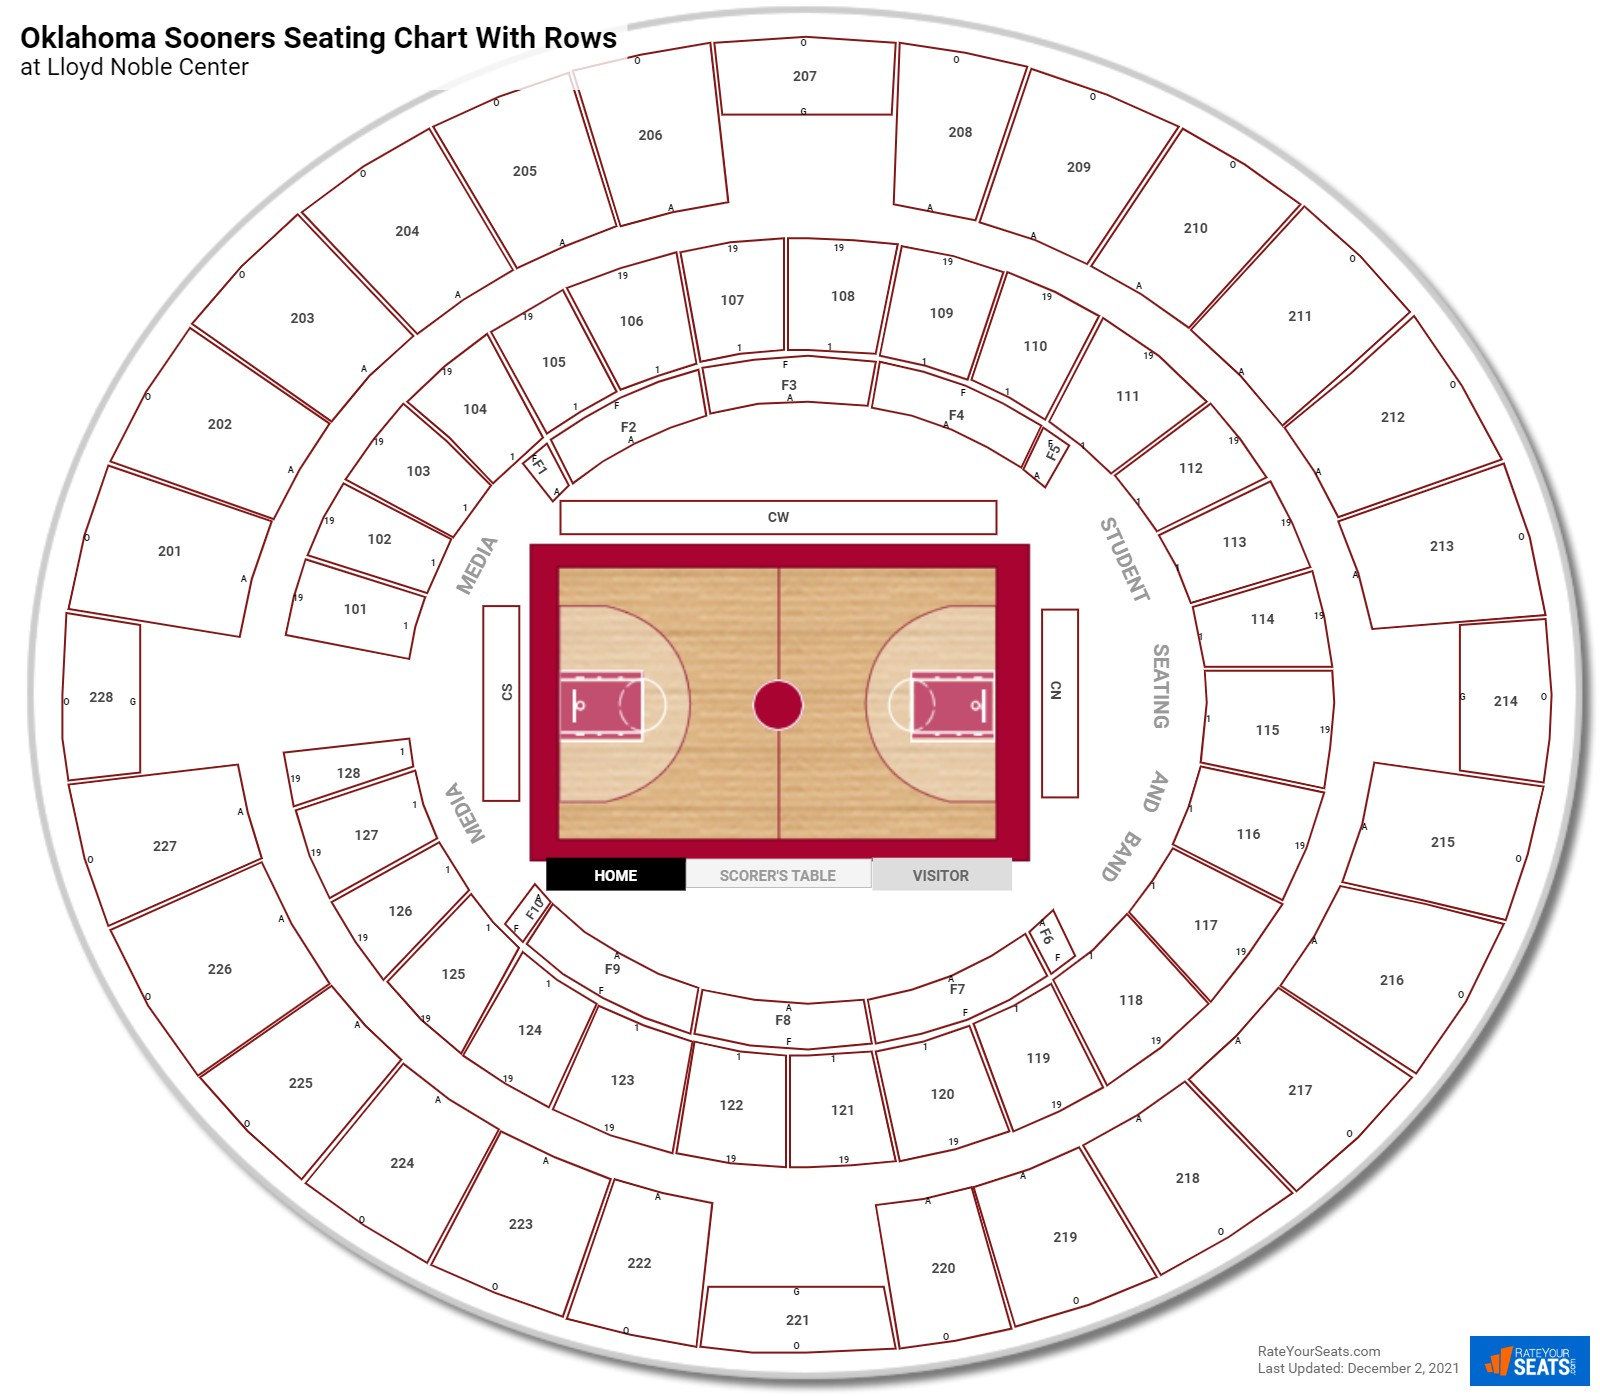 Lloyd Noble Center Seating Charts Rateyourseats Com